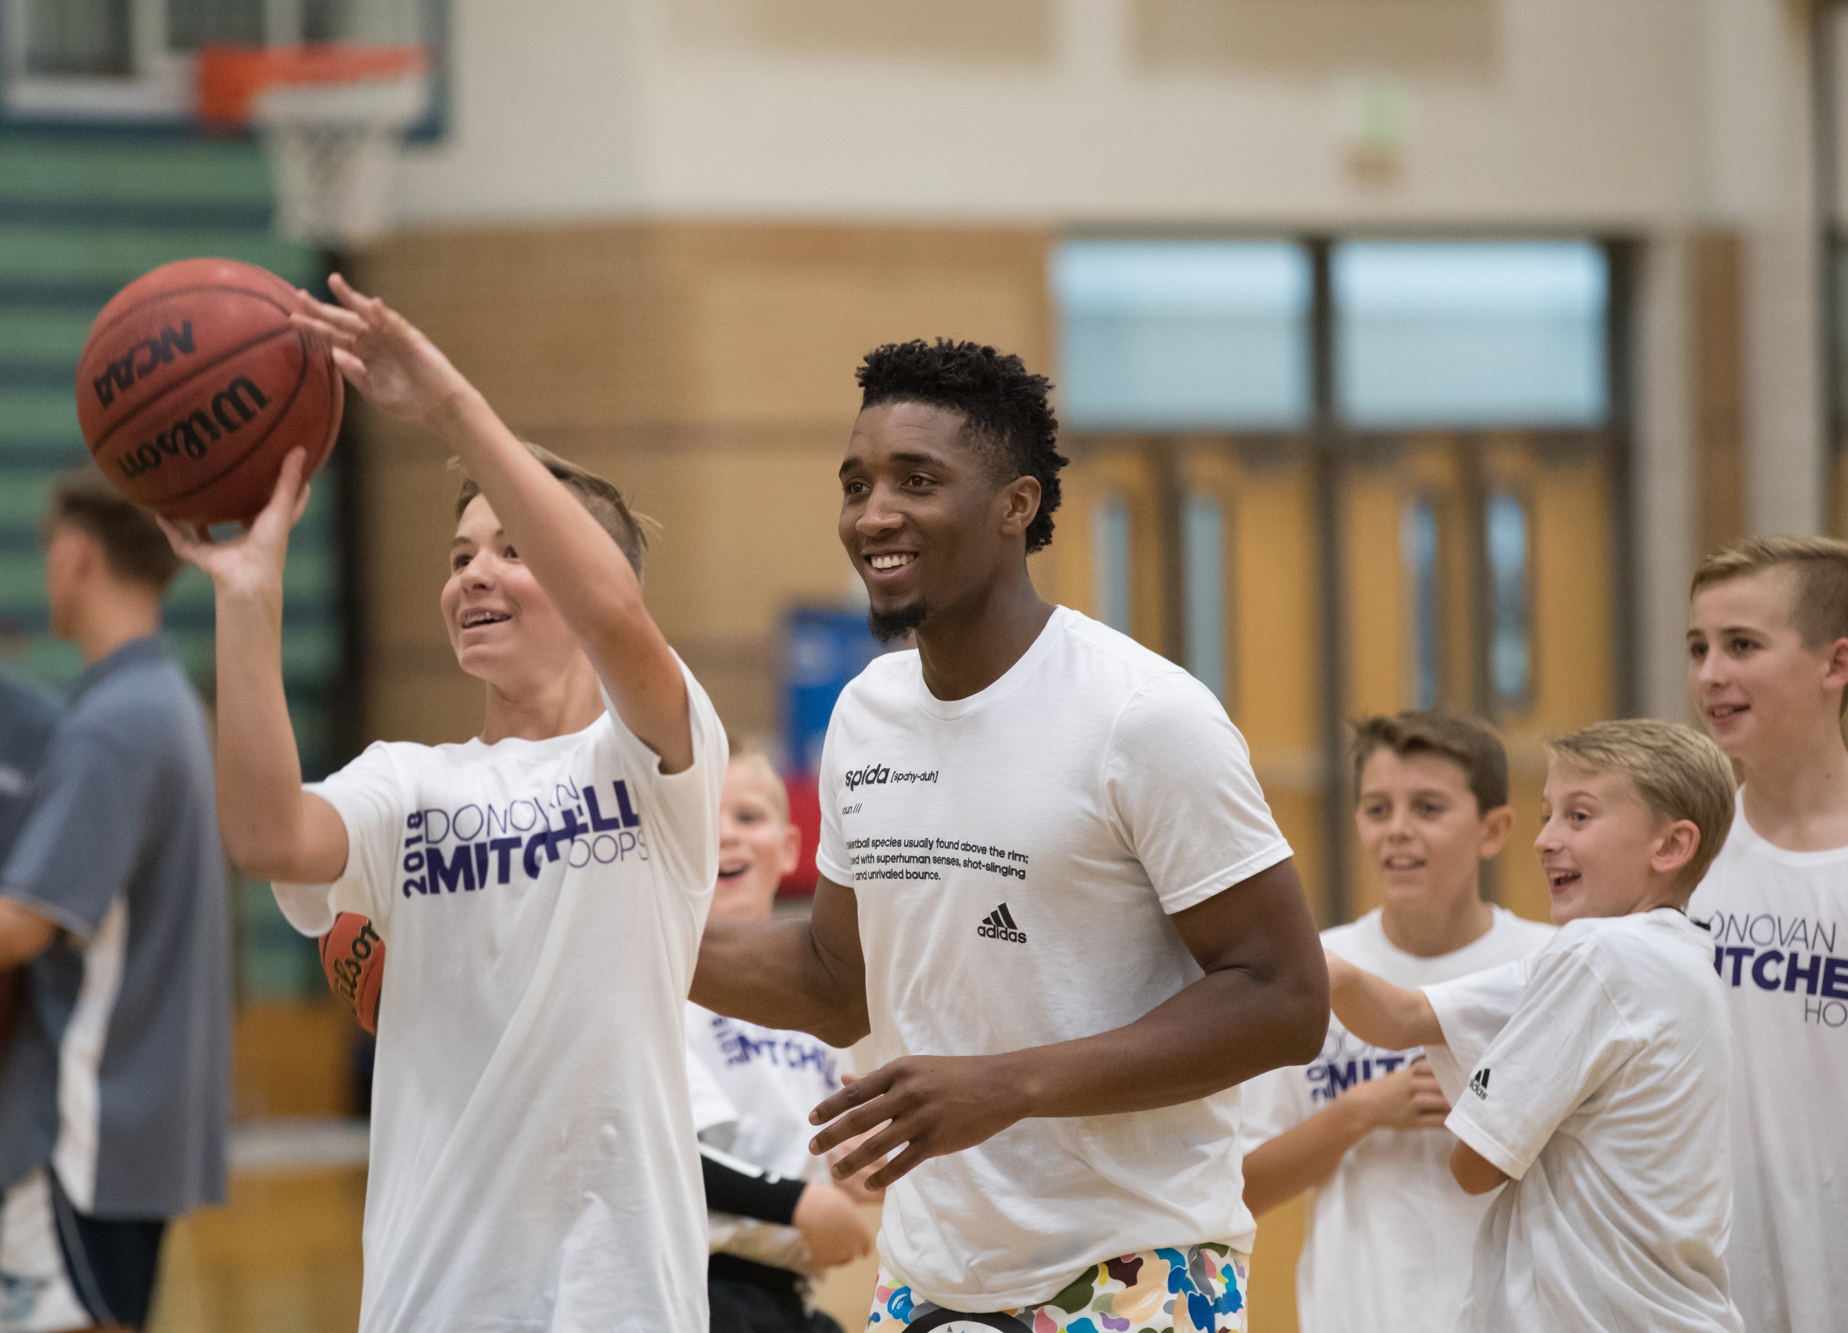 180730-donovan-mitchell-basketball-camp-session-2-WH-3600-3.jpg